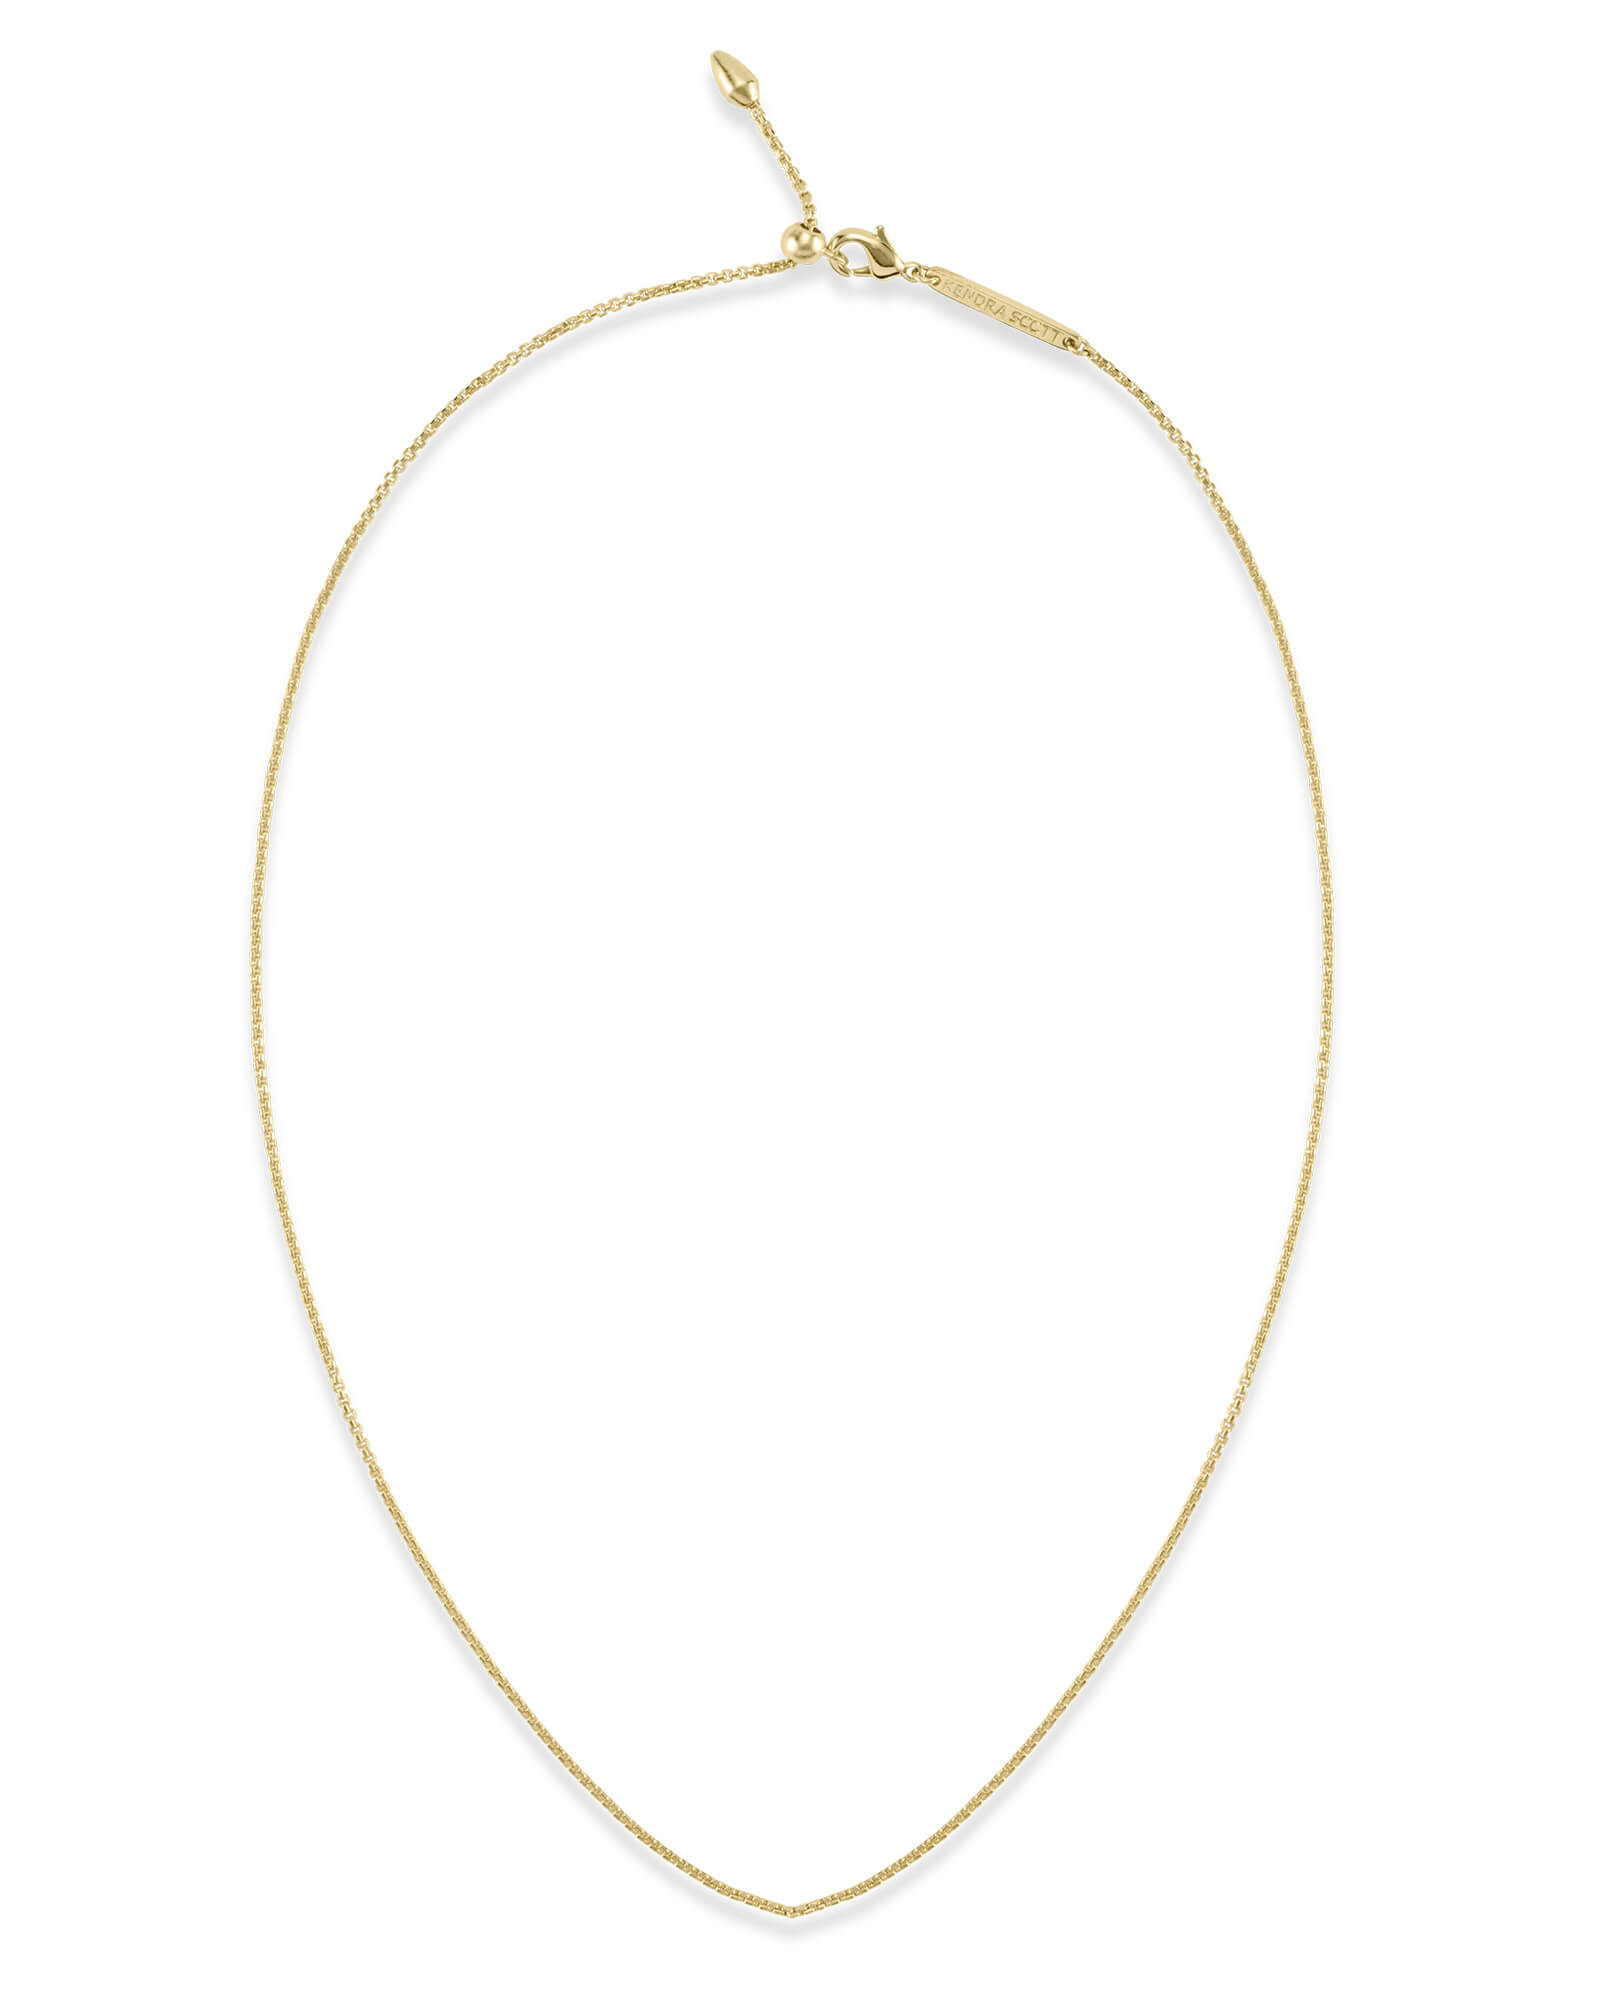 Petite Thin Adjustable Chain Necklace in Gold